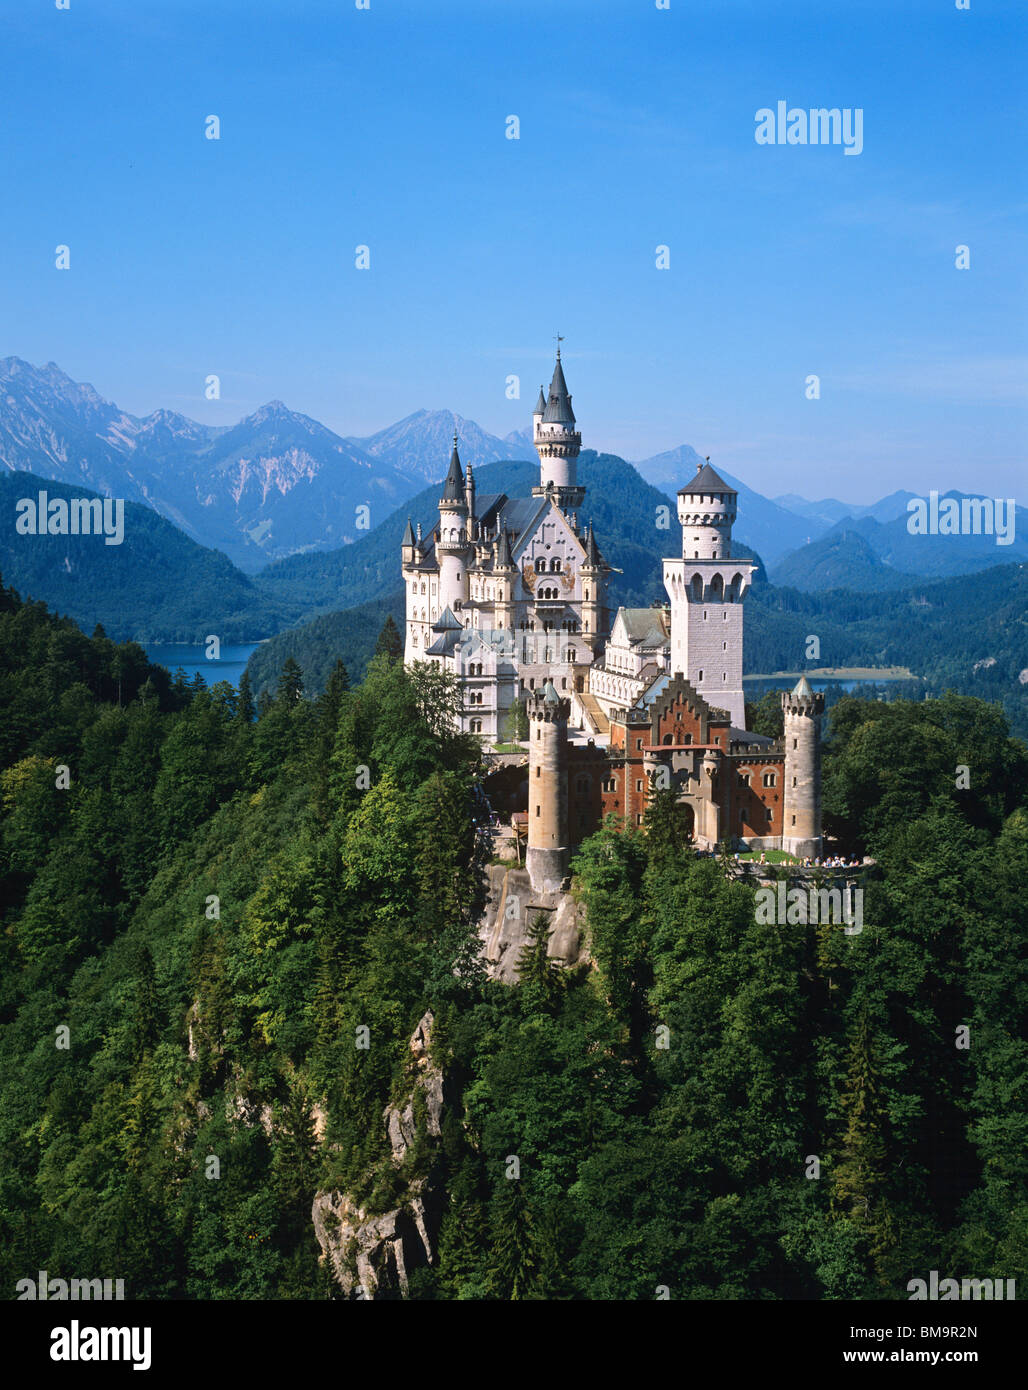 Spectacular view of the fairytale castle of Neuschwanstein, built by King Ludwig II near the town of Hohenschwangau - Stock Image